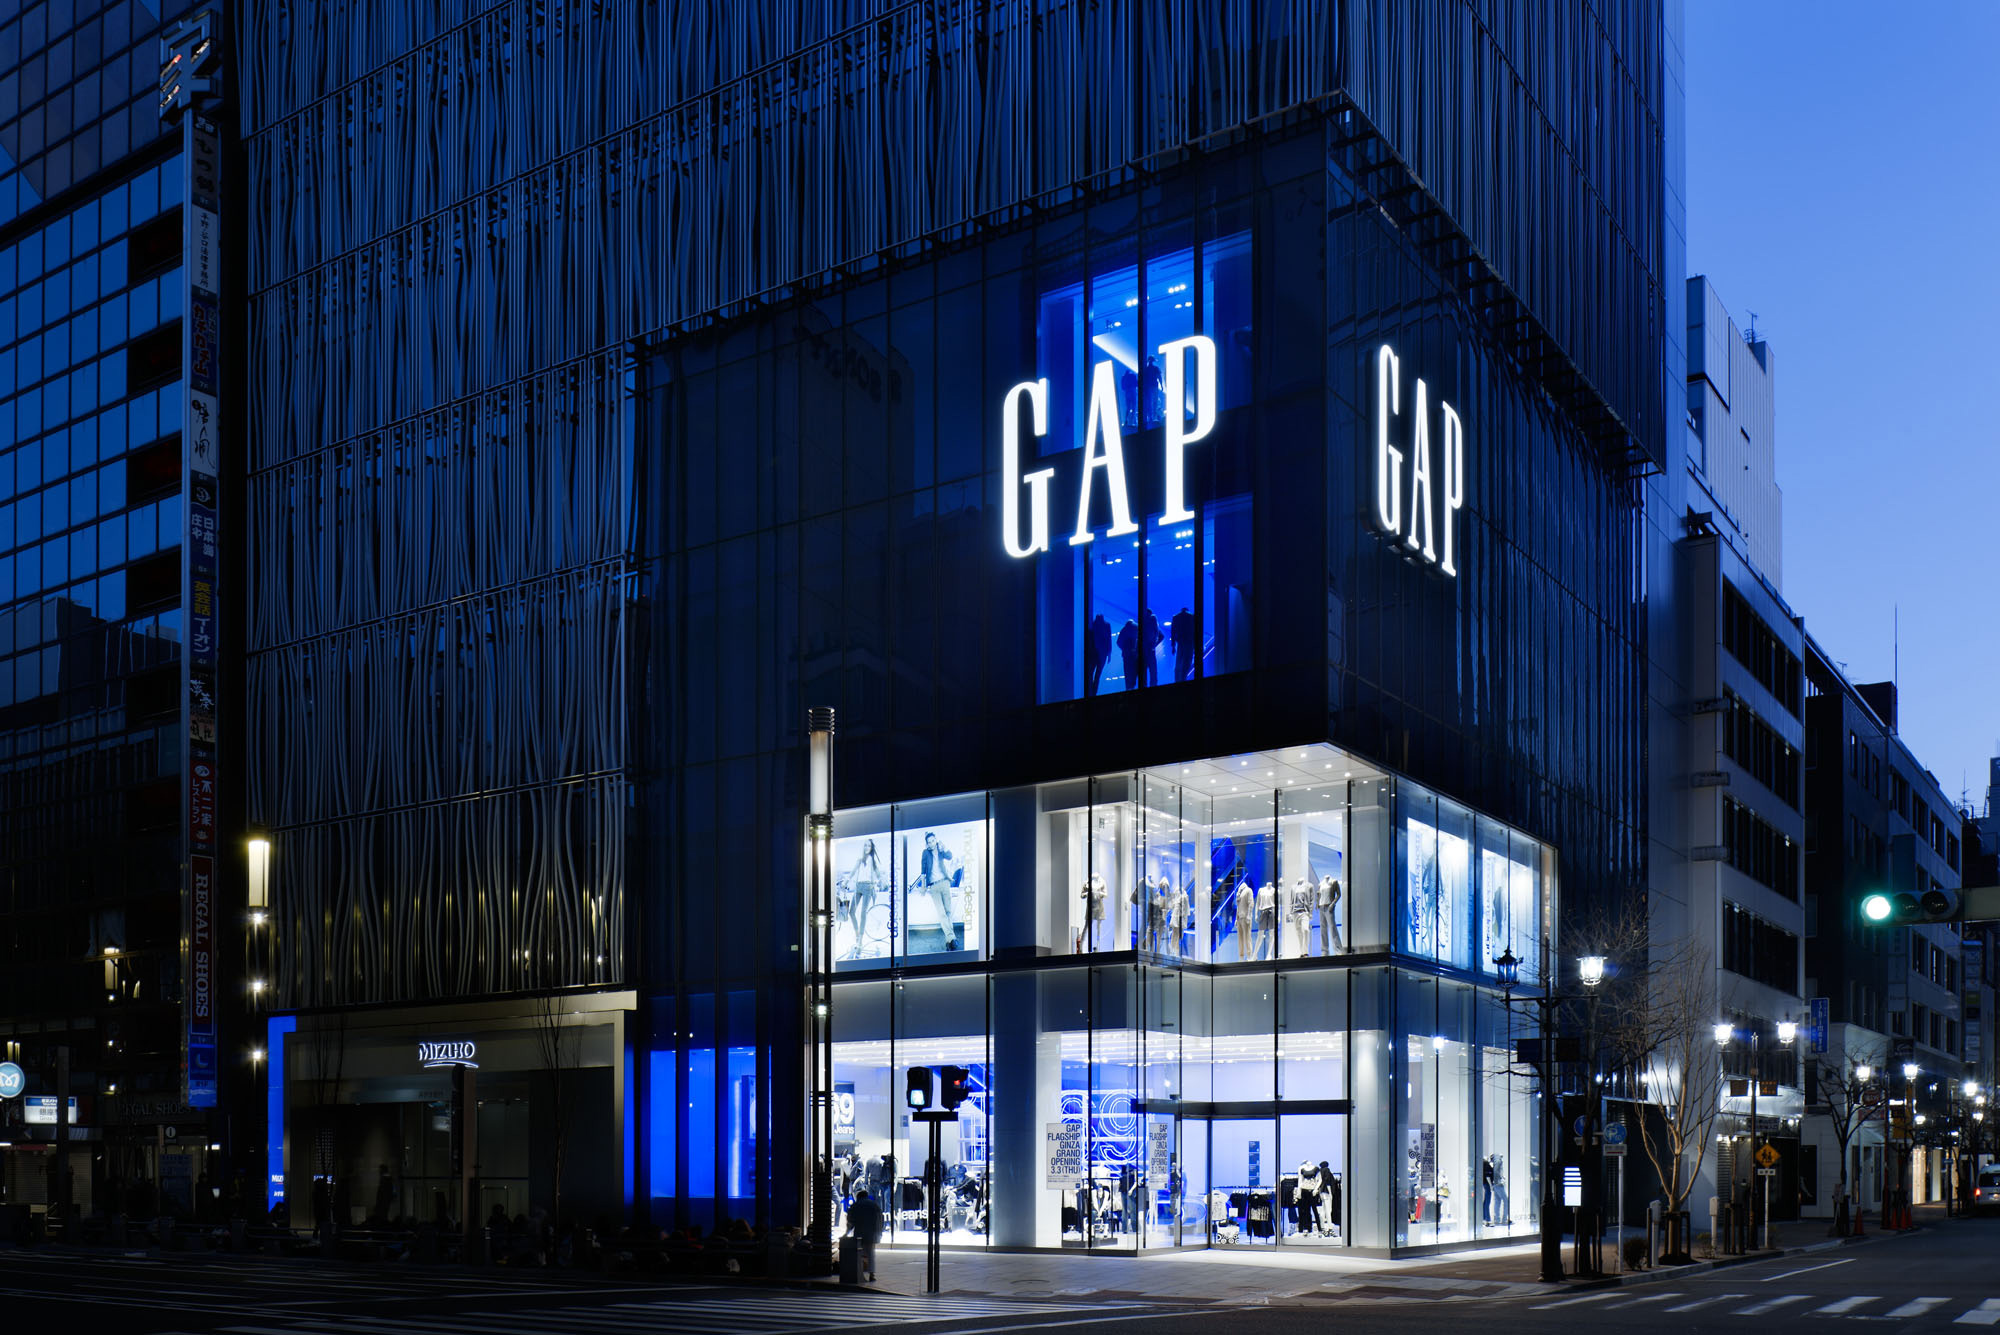 List of all Gap store locations in california. Locate the Gap store near you.